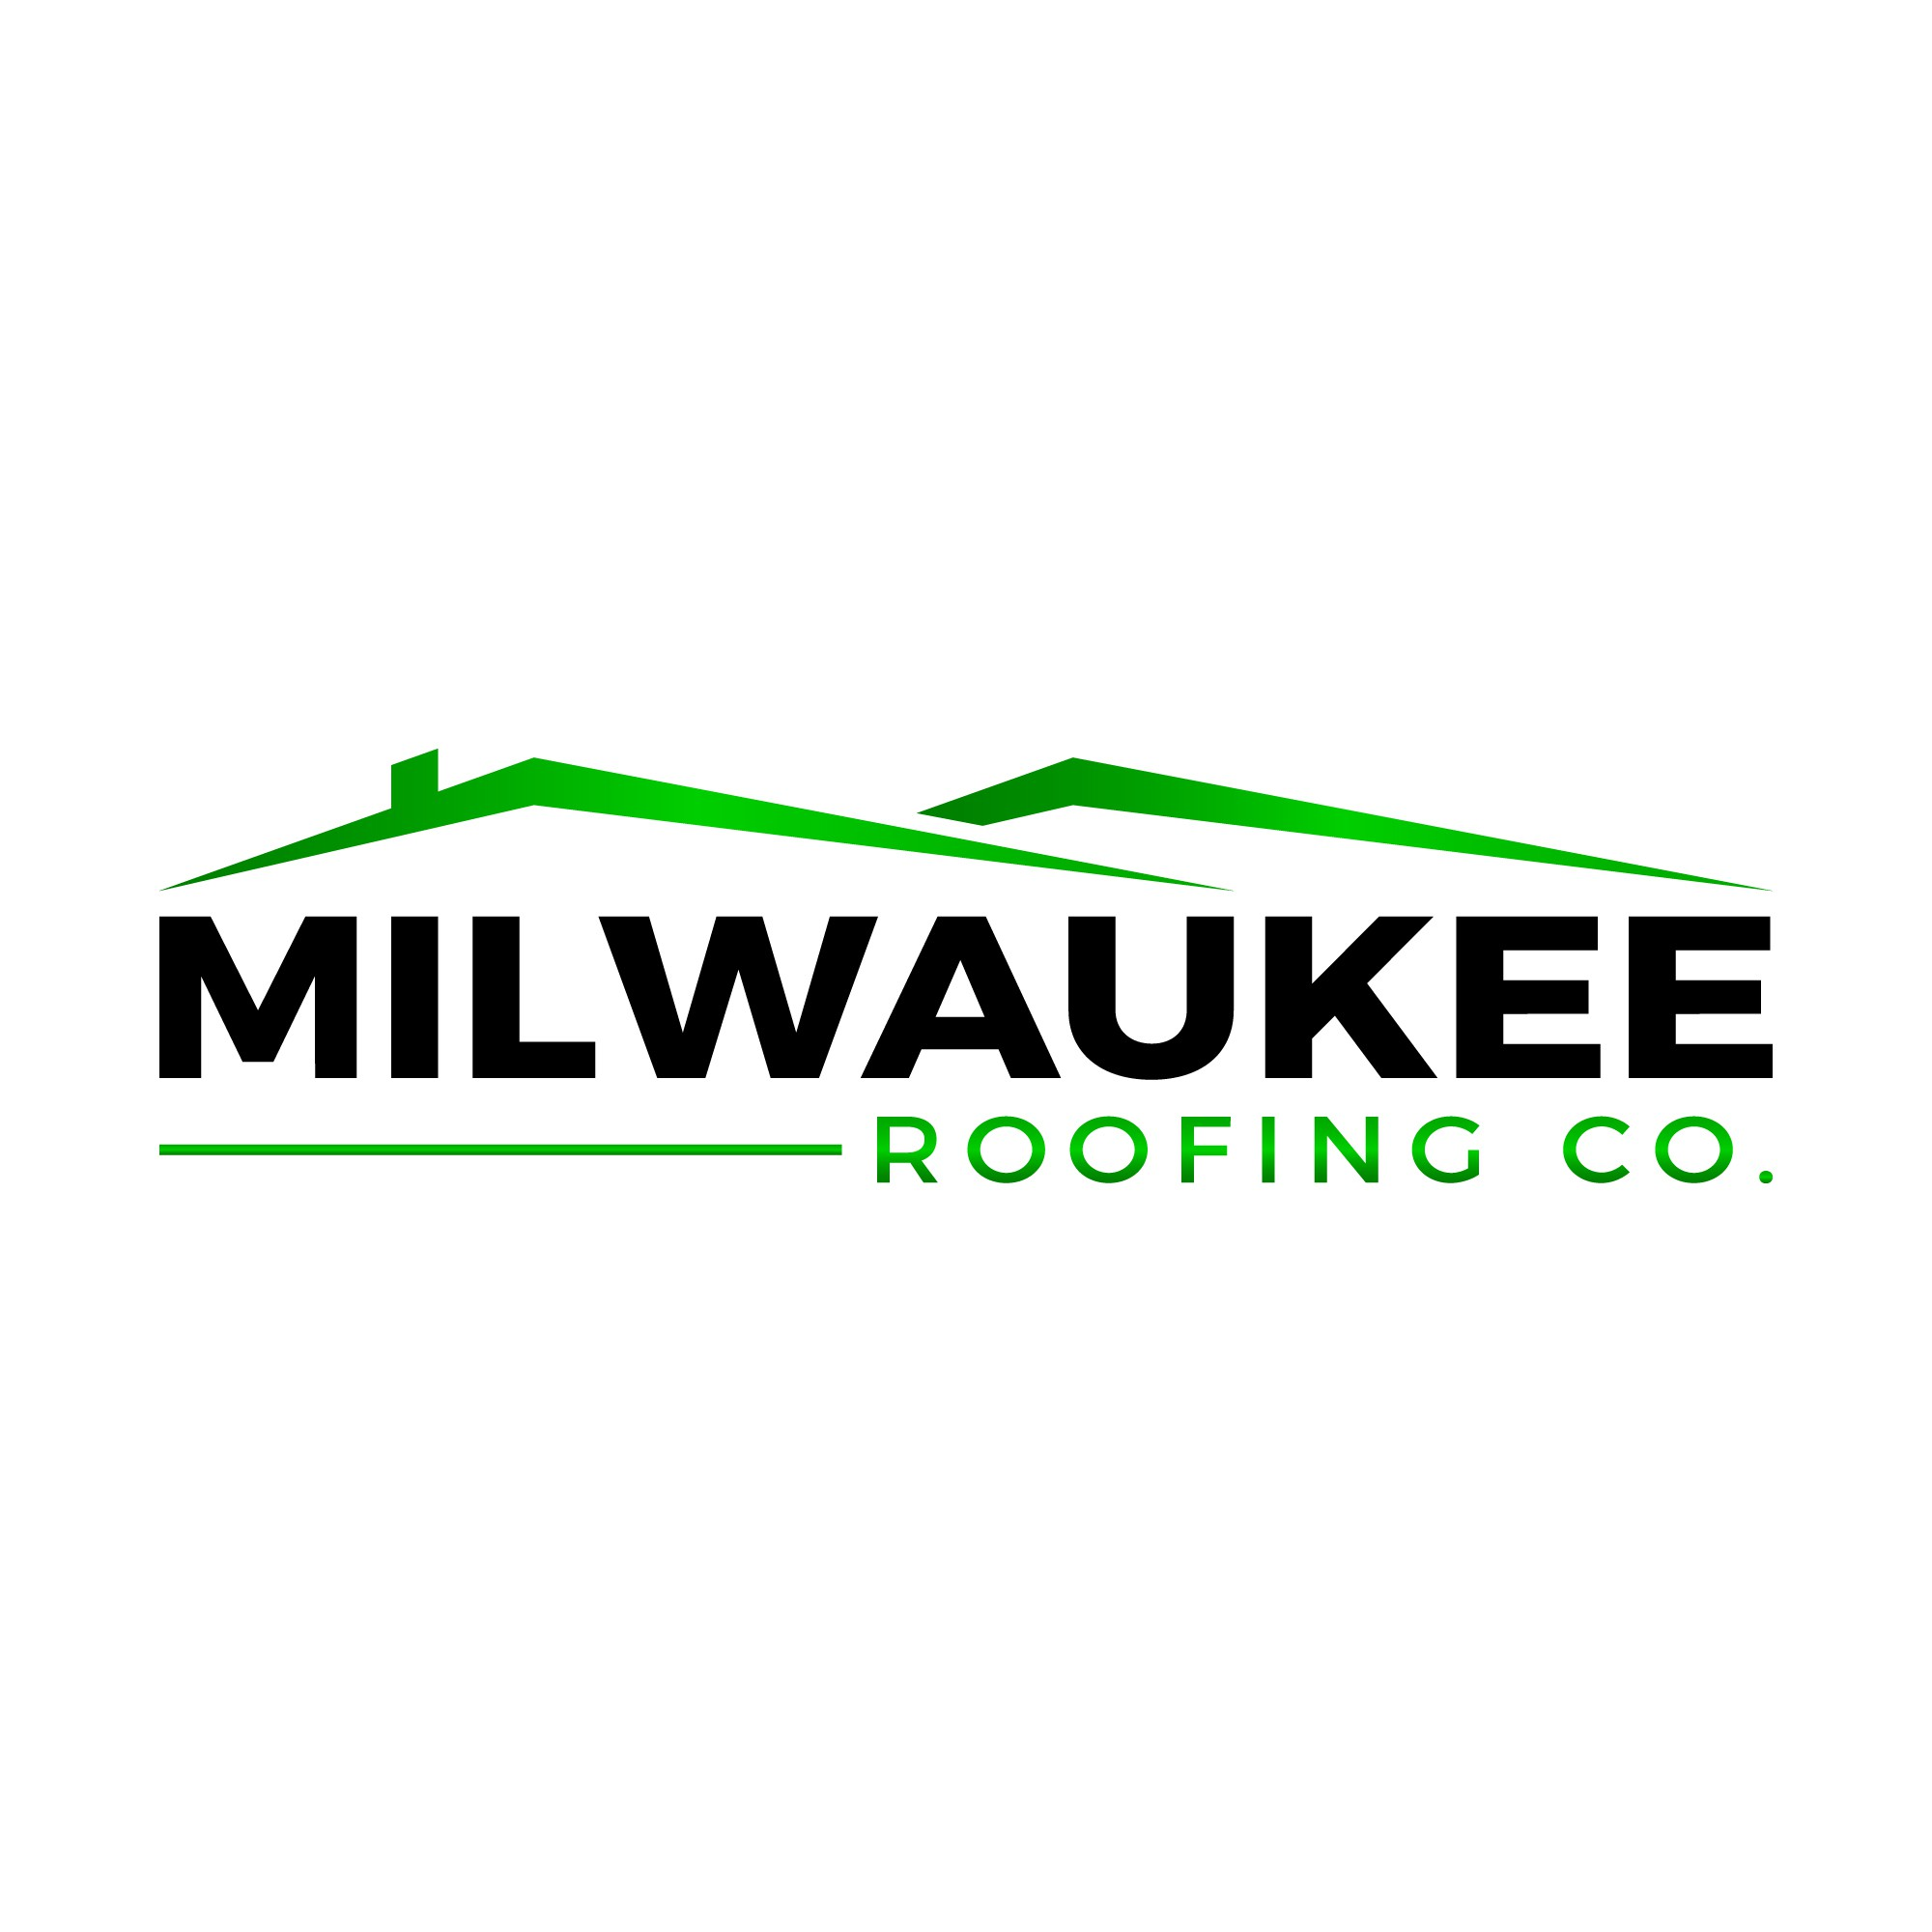 Roofing Company Needs New Logo